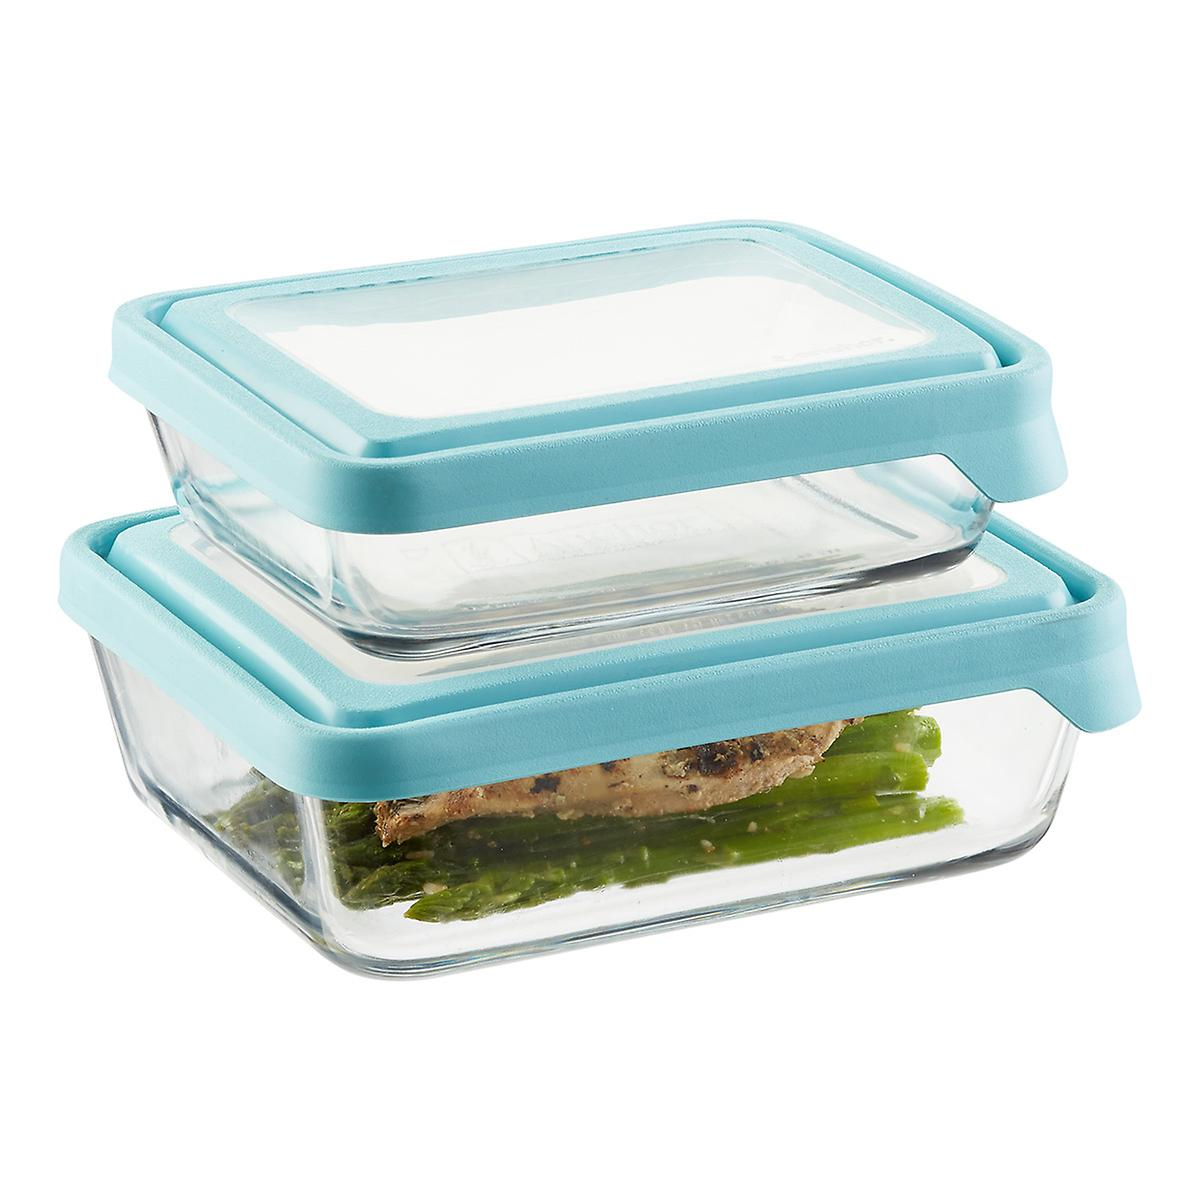 a64efe556a9f Anchor Hocking Glass TrueSeal Rectangle Food Storage Containers with Blue  Lids